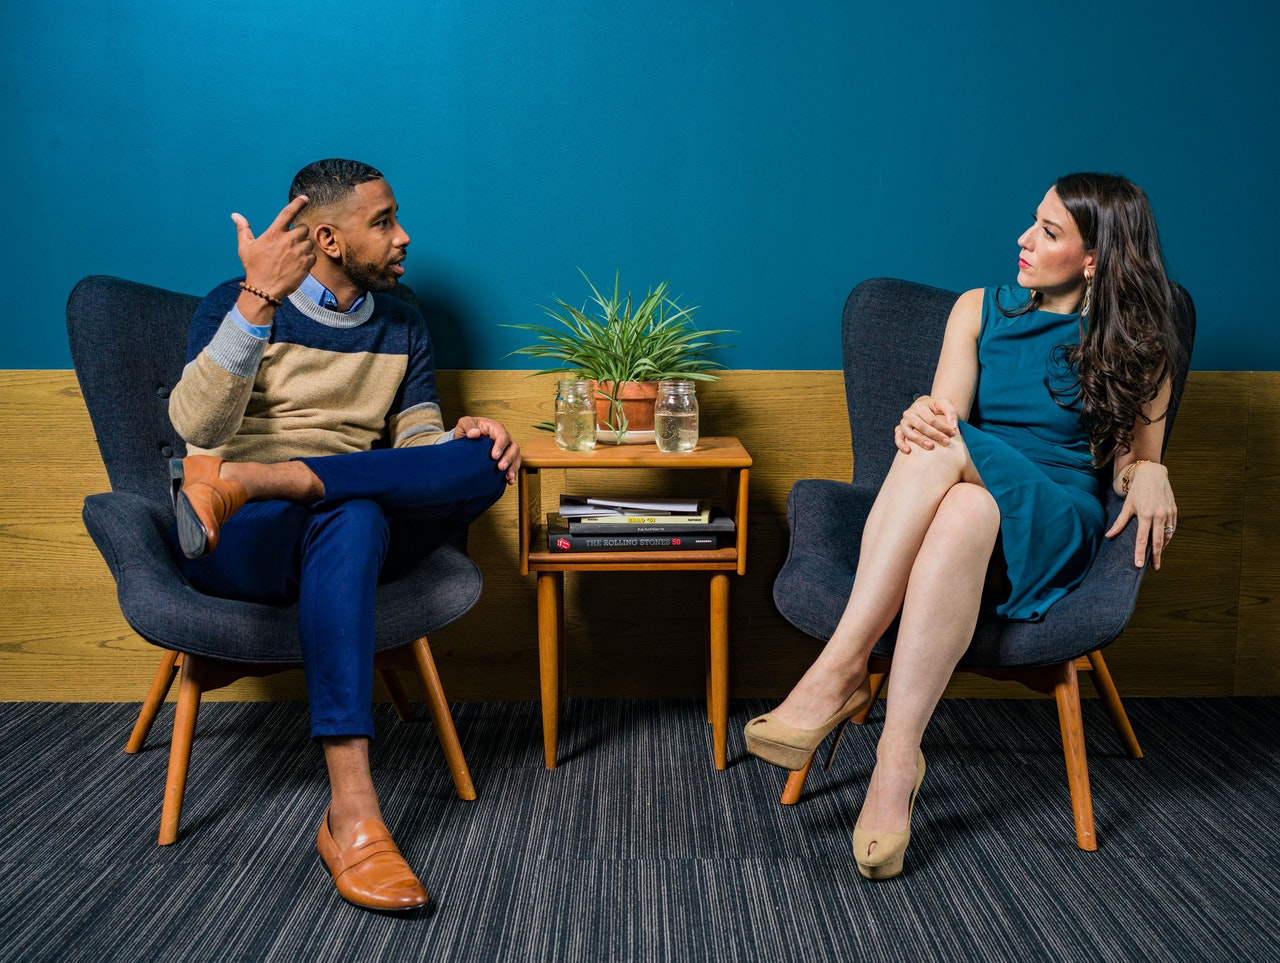 How To Keep A Conversation Going (5 Simple Strategies)